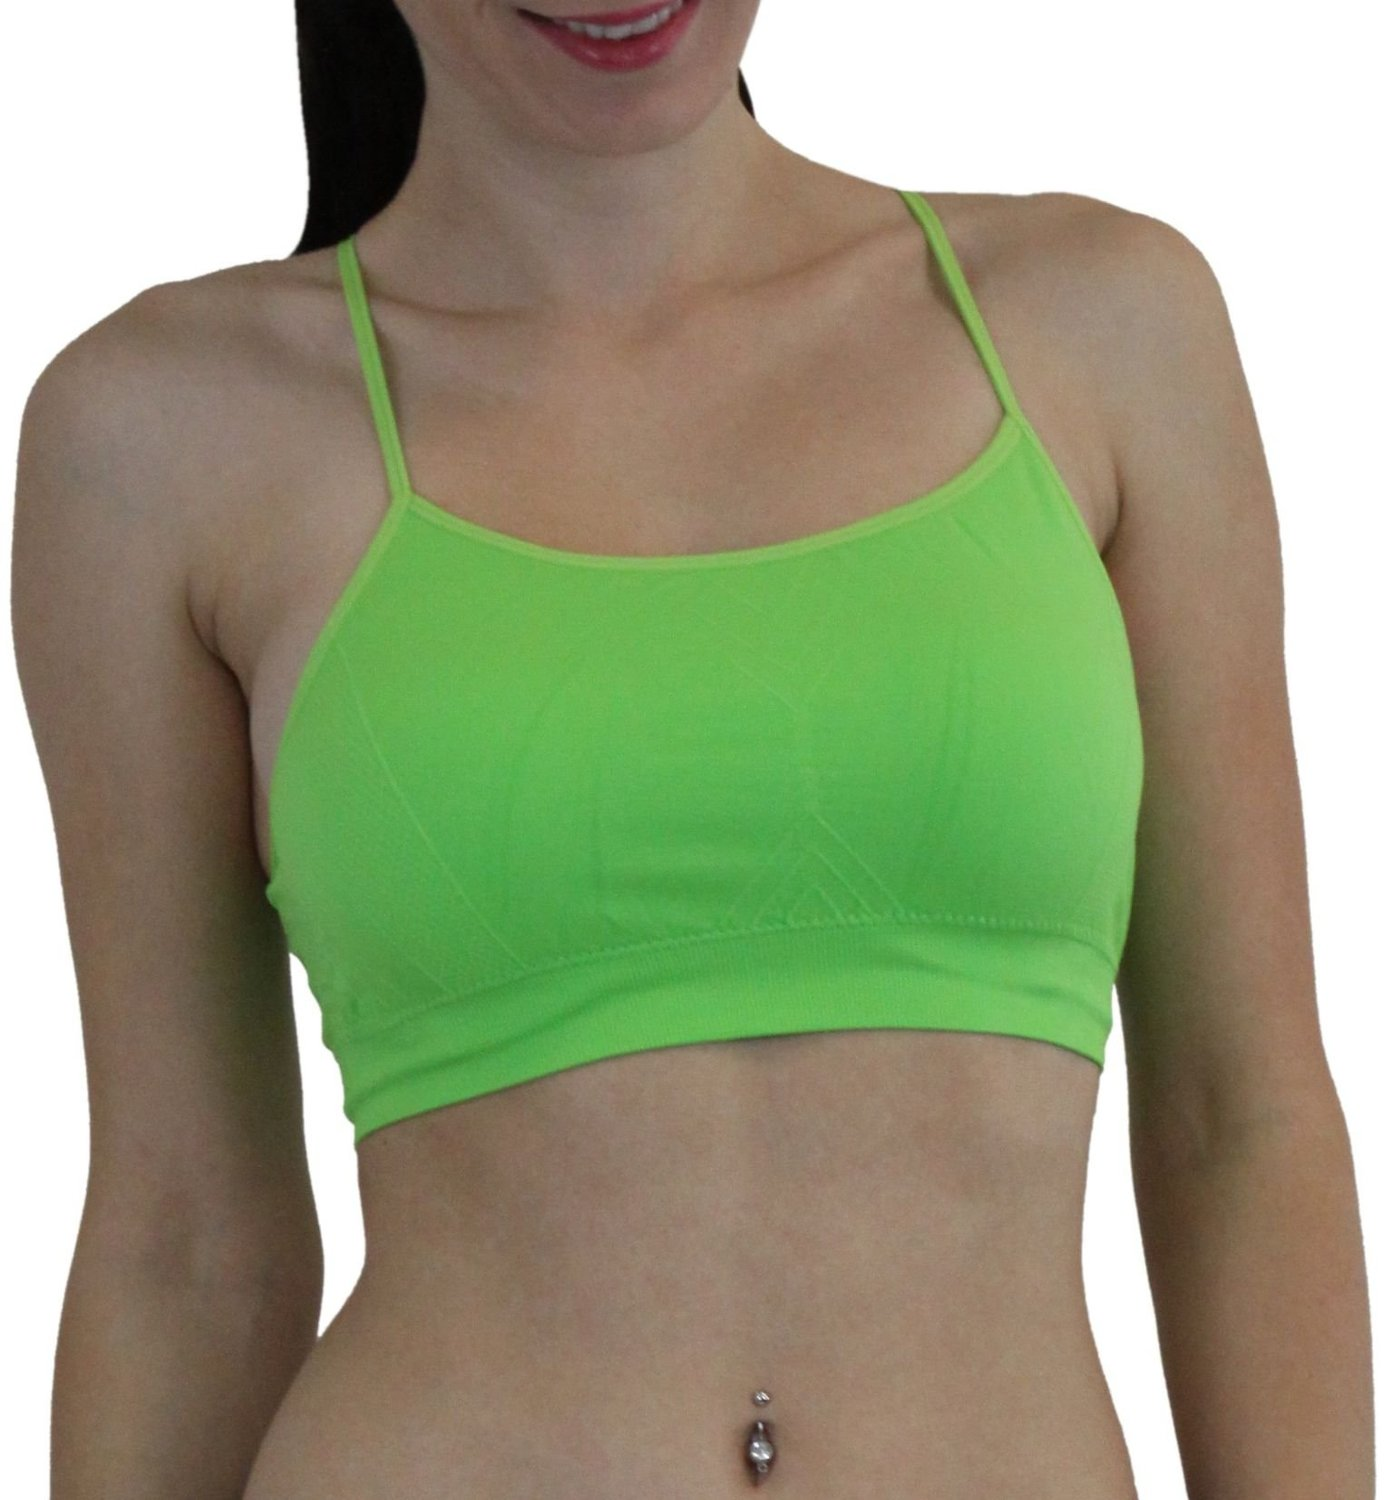 f6835286e3 Get Quotations · ToBeInStyle Women s Racerback Wire-Free Sports Bra w   Adjustable Straps